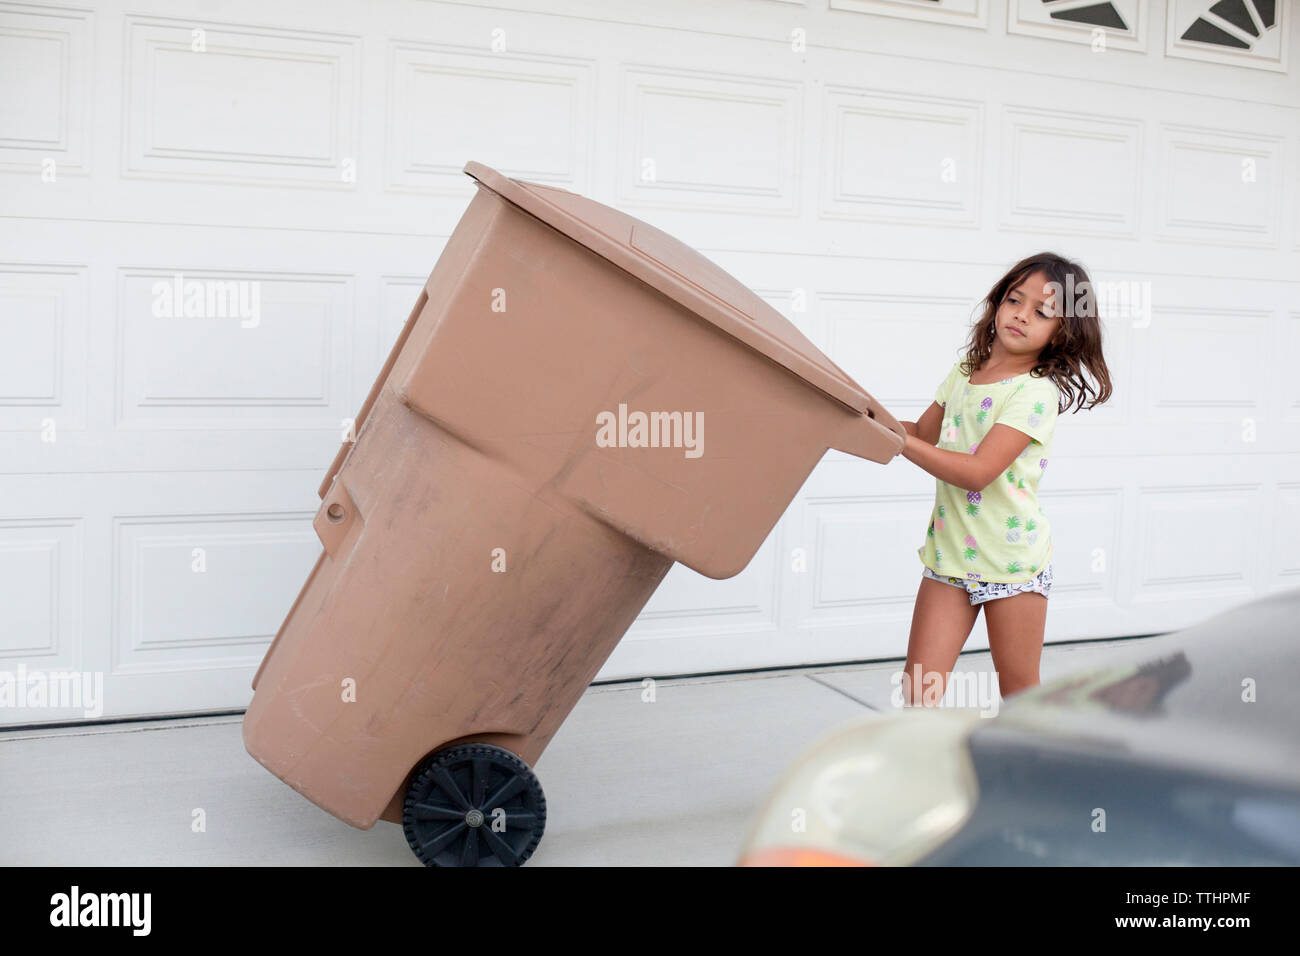 Girl pulling garbage can by wall on sidewalk - Stock Image